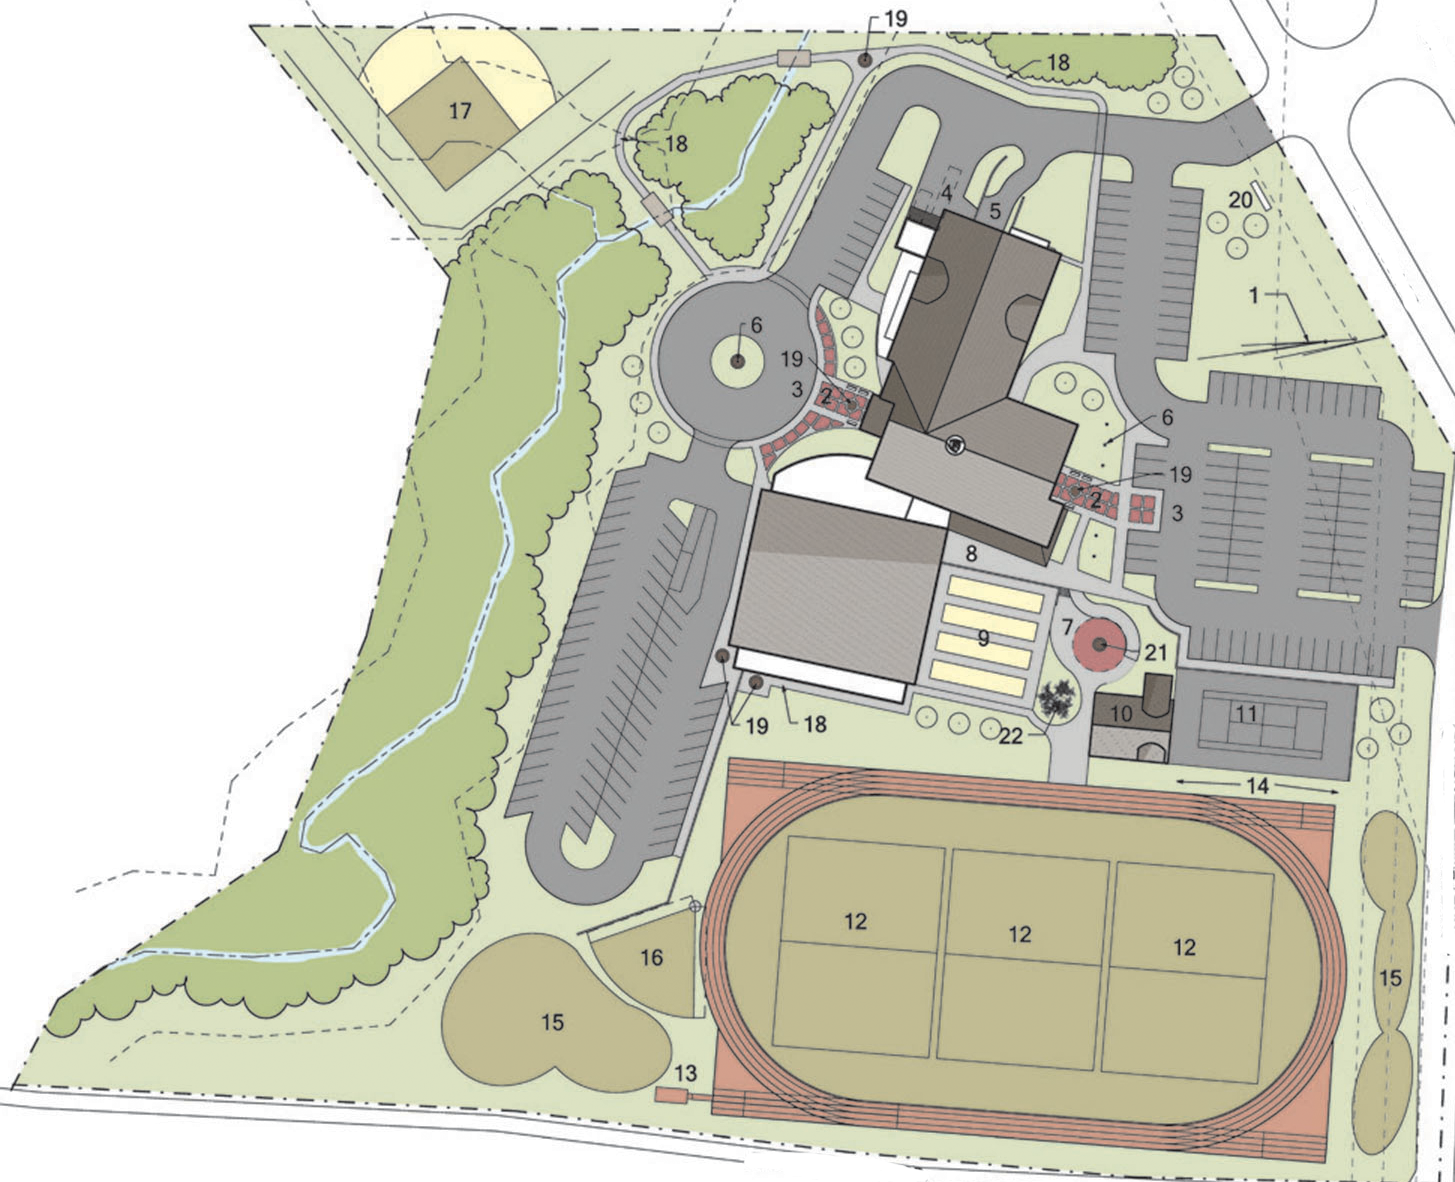 The planned SOMO Training for Life Campus (shown in an early-stage rendering above) will offer athletic fields and facilities for year-round training opportunities; education for athletes, coaches and volunteers; and enriched programming for SOMO's Healthy Athletes screenings and Young Athletes programs.